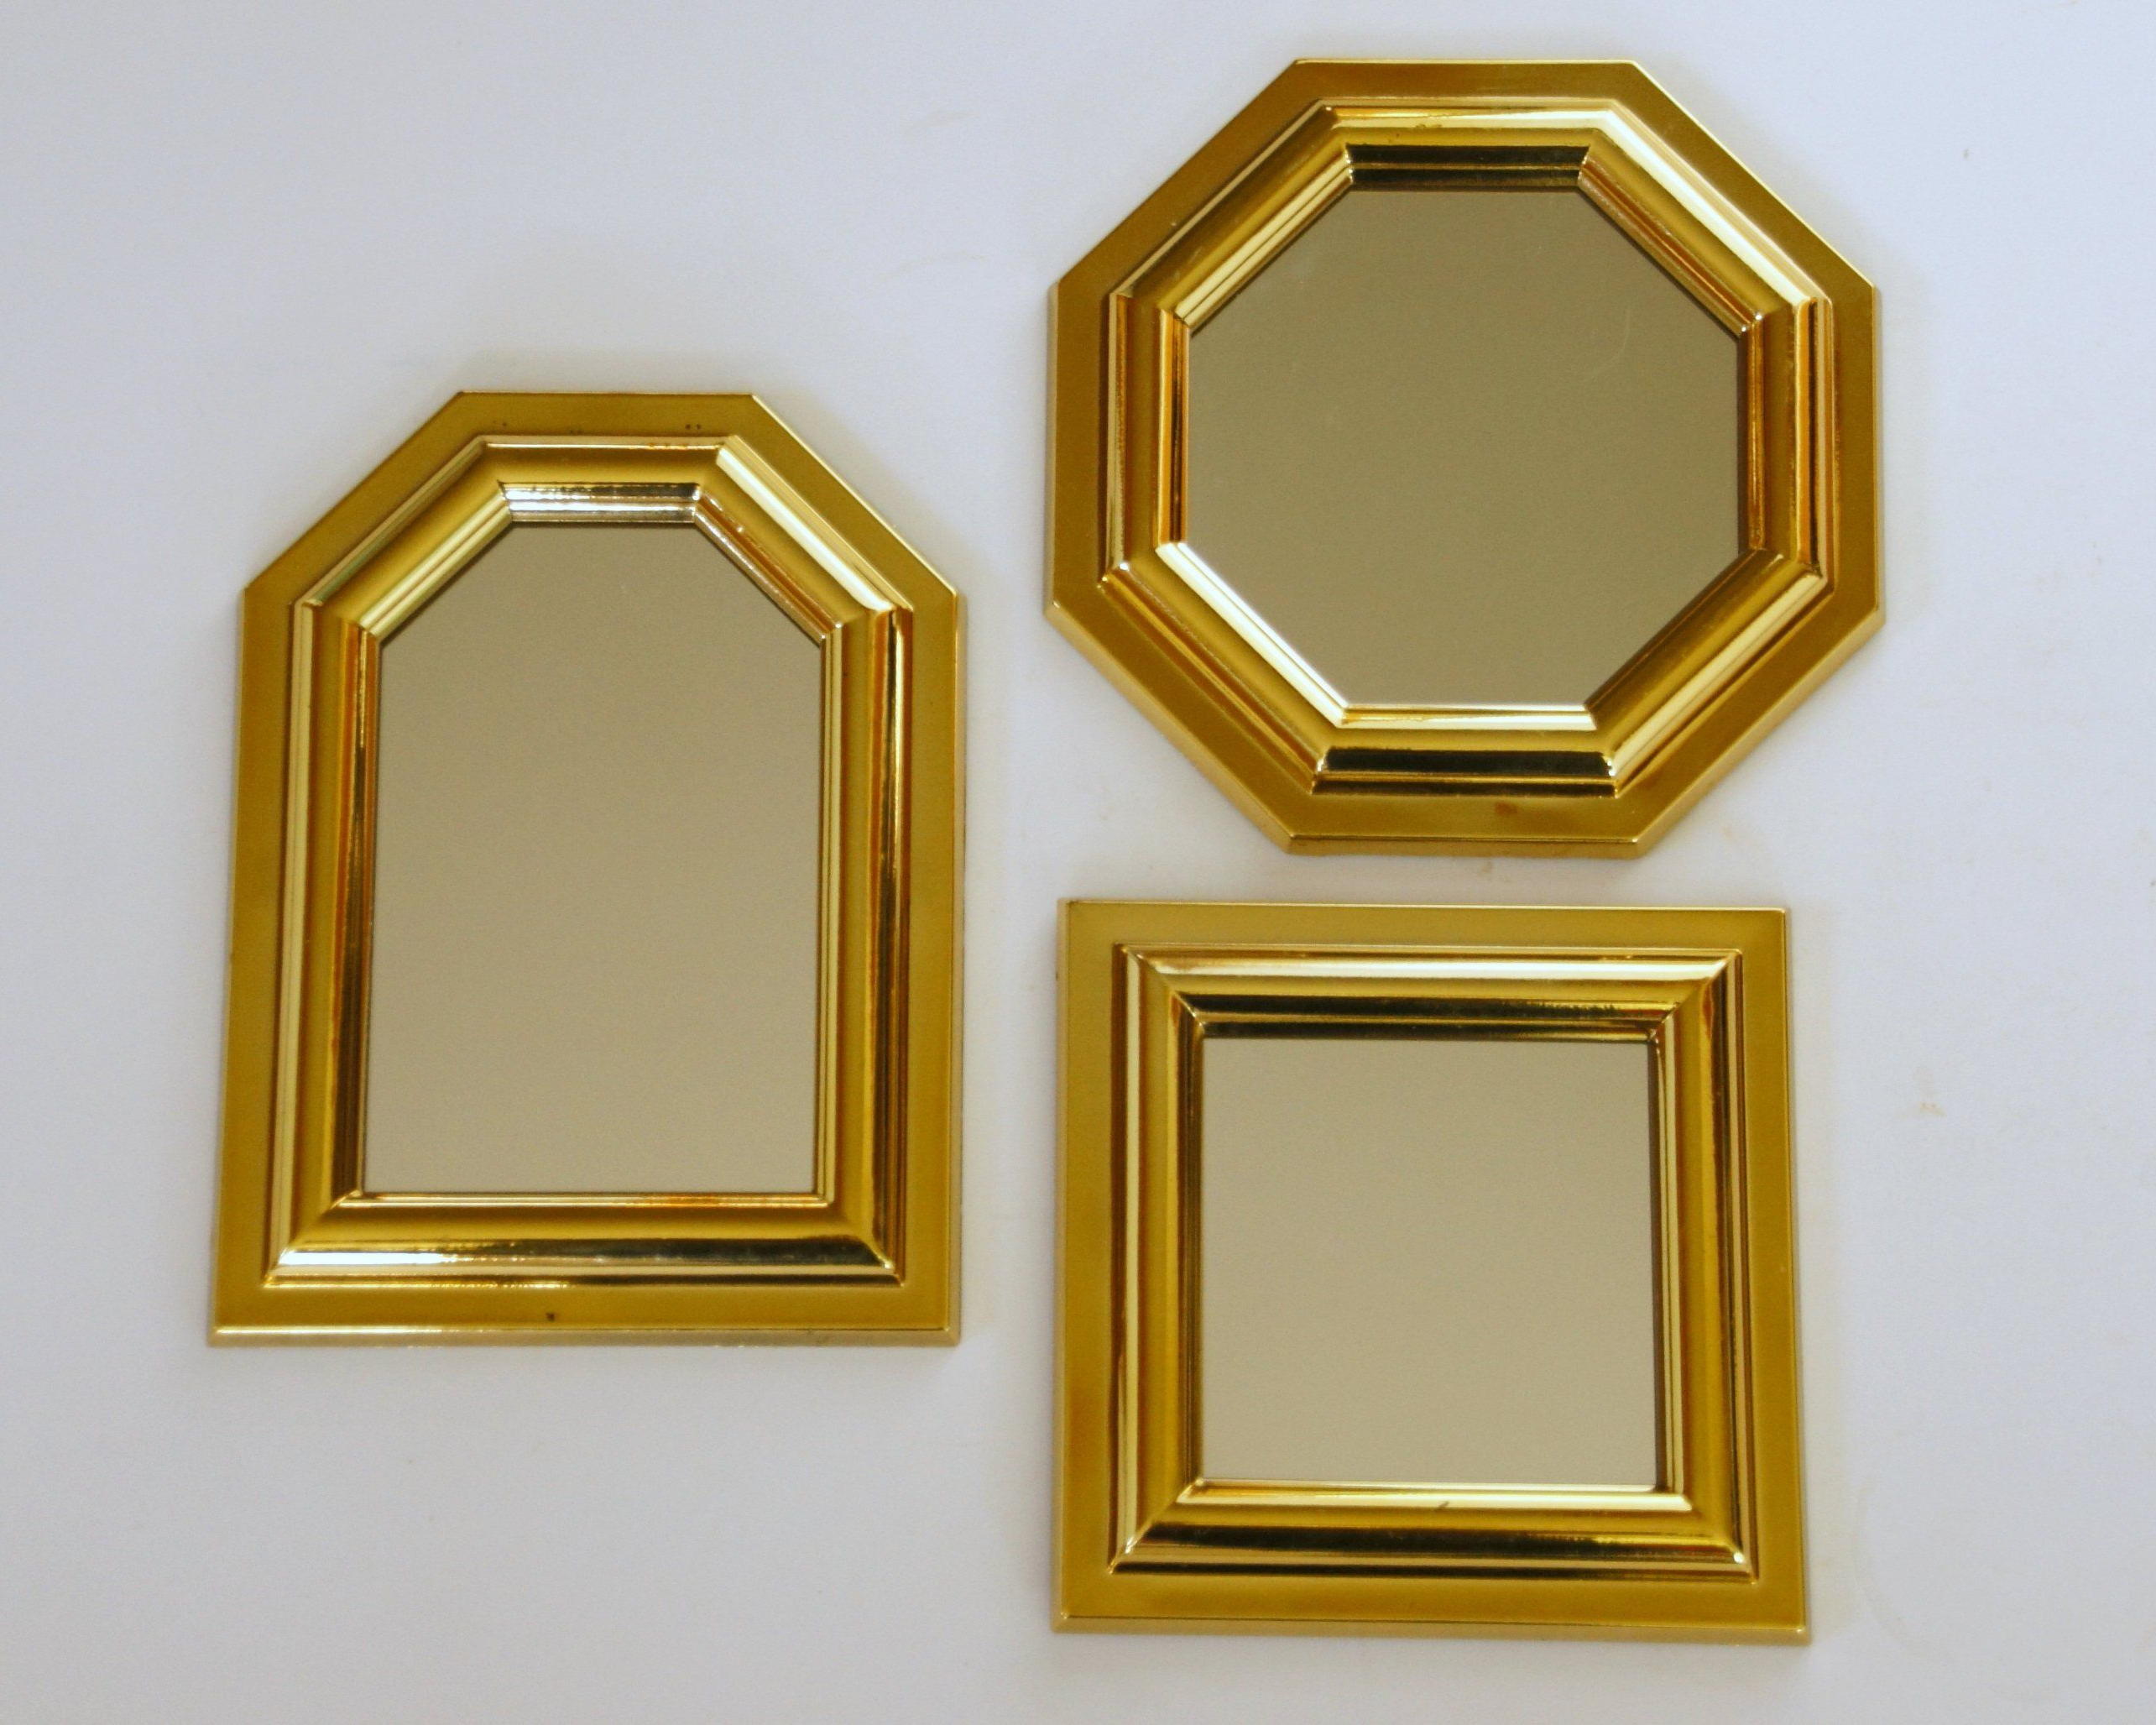 Vintage Mirror Set, Small Gold Mirrors, Burwood Wall Mirrors Throughout Fashionable Small Gold Wall Mirrors (Gallery 3 of 20)